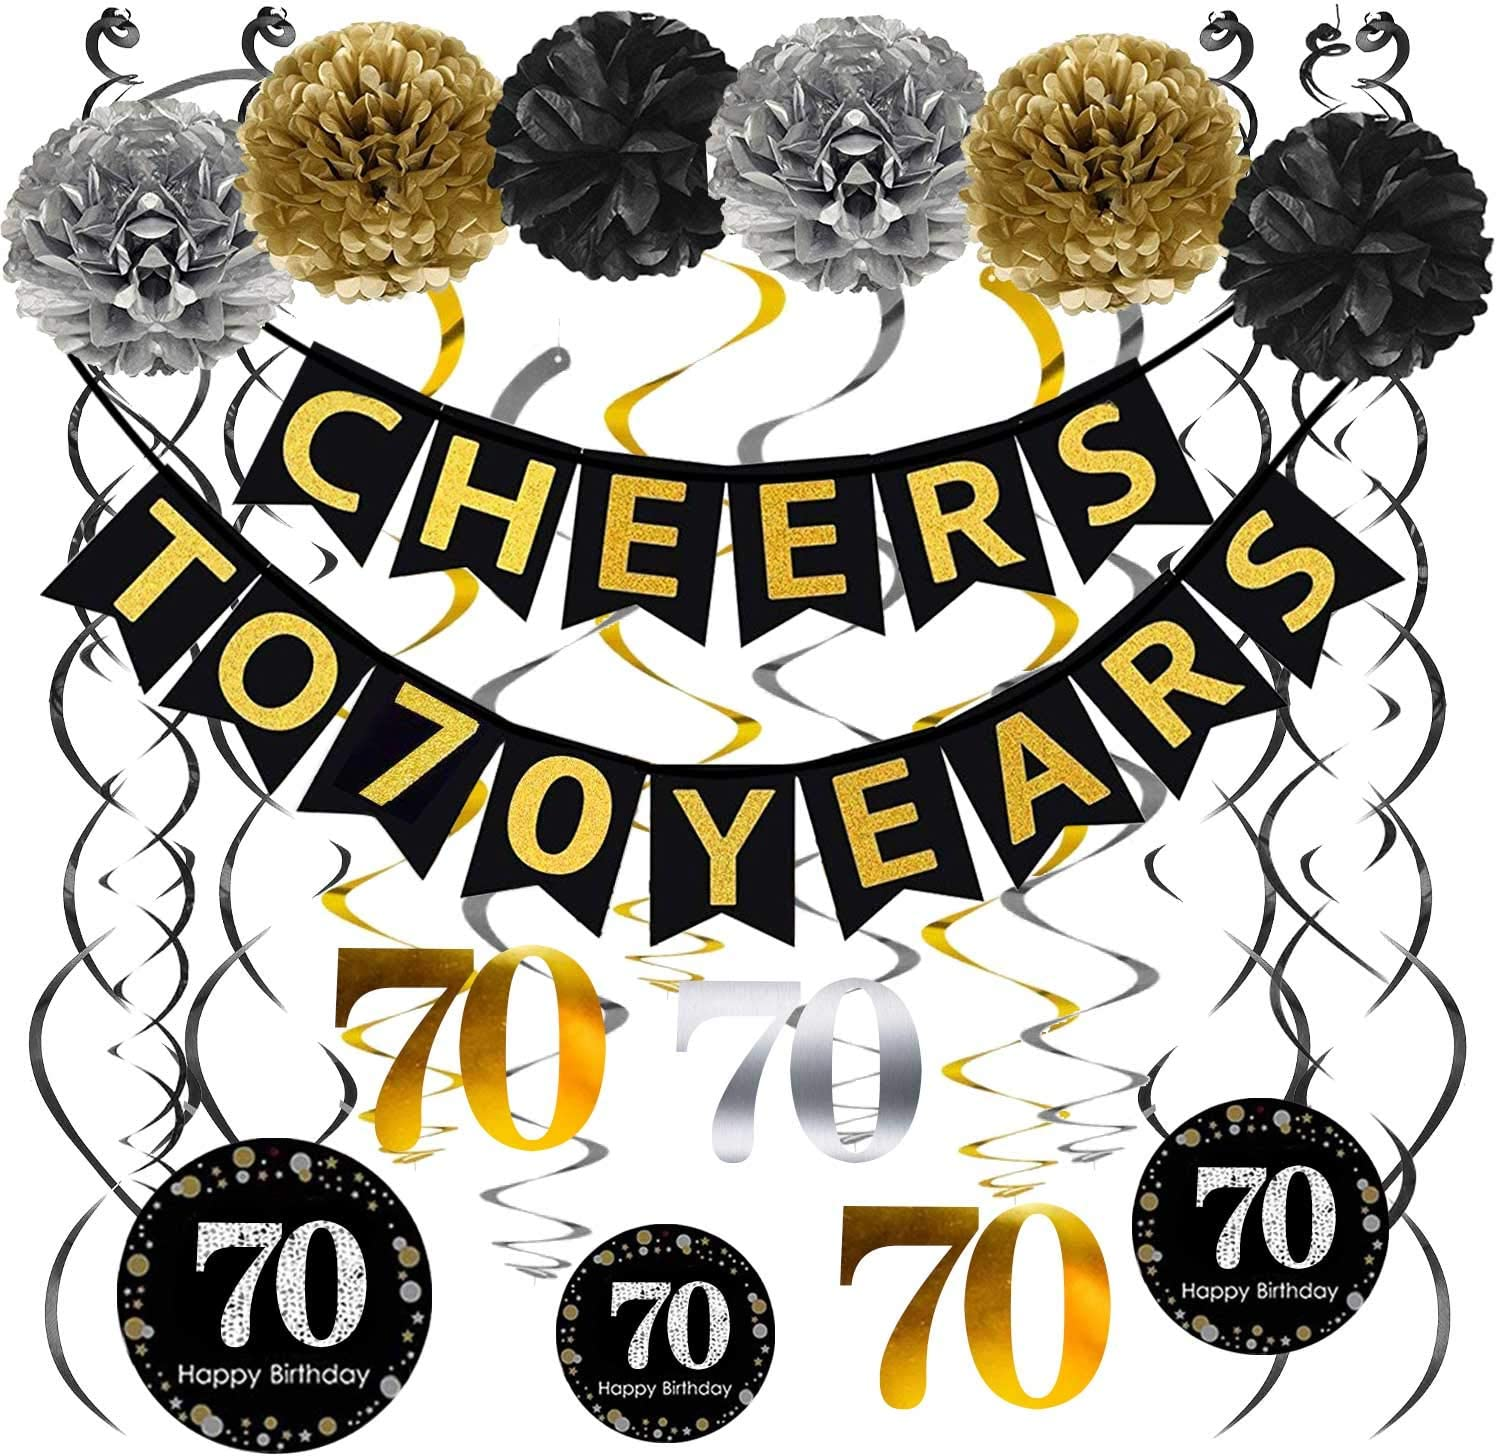 cheers to 70 years 70th birthday decor 70 years old 70th birthday party custom wrappers 70th anniversary cheers to 70 years 70th